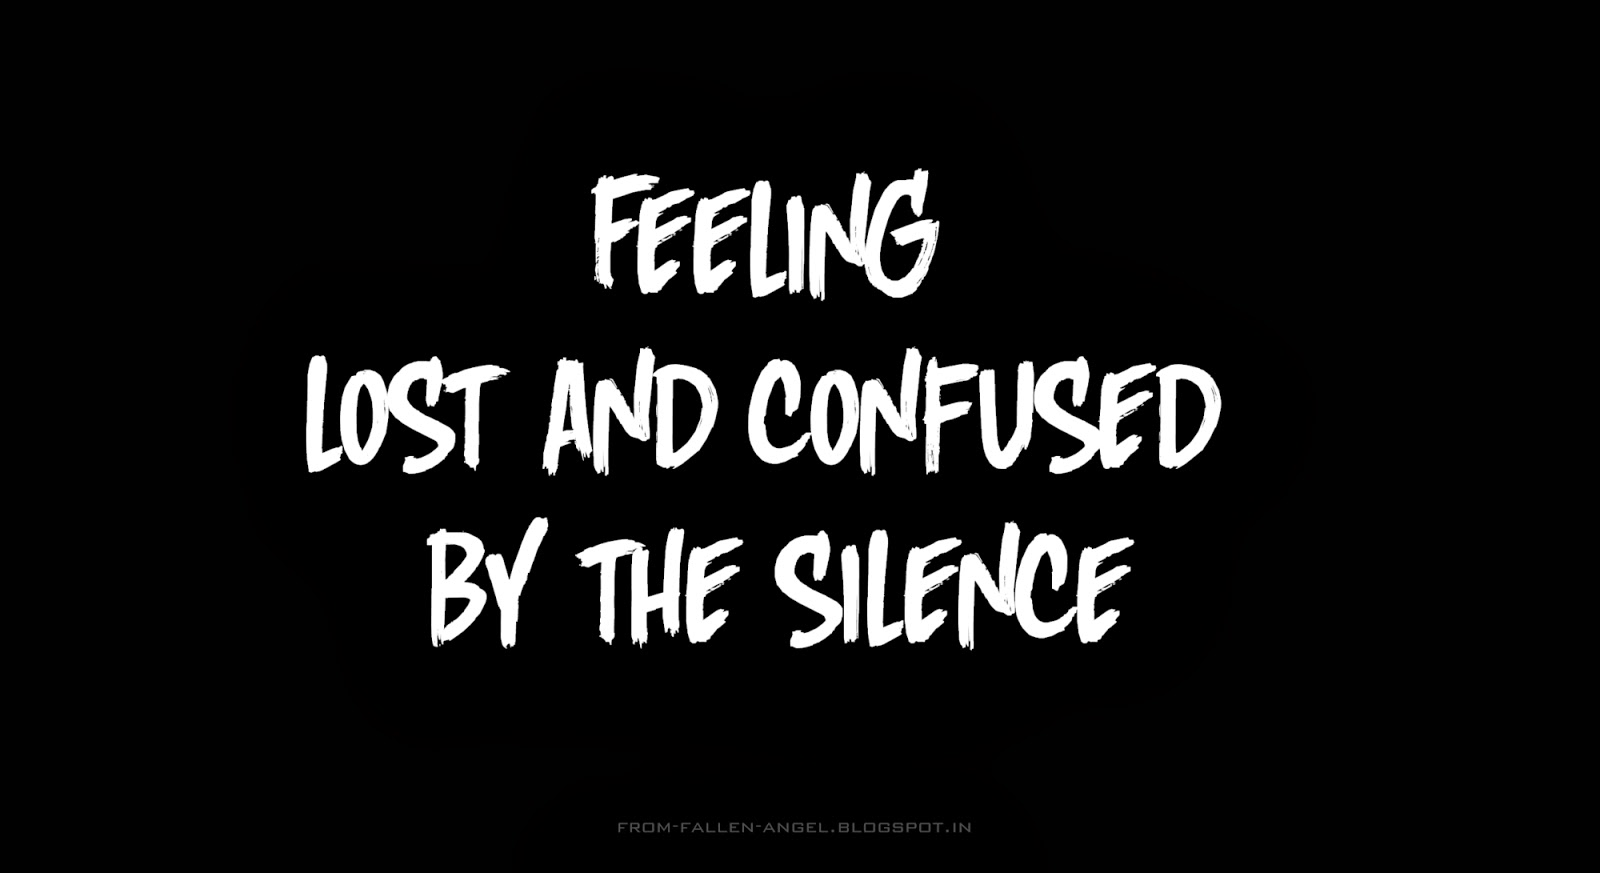 Feeling lost and confused by the silence